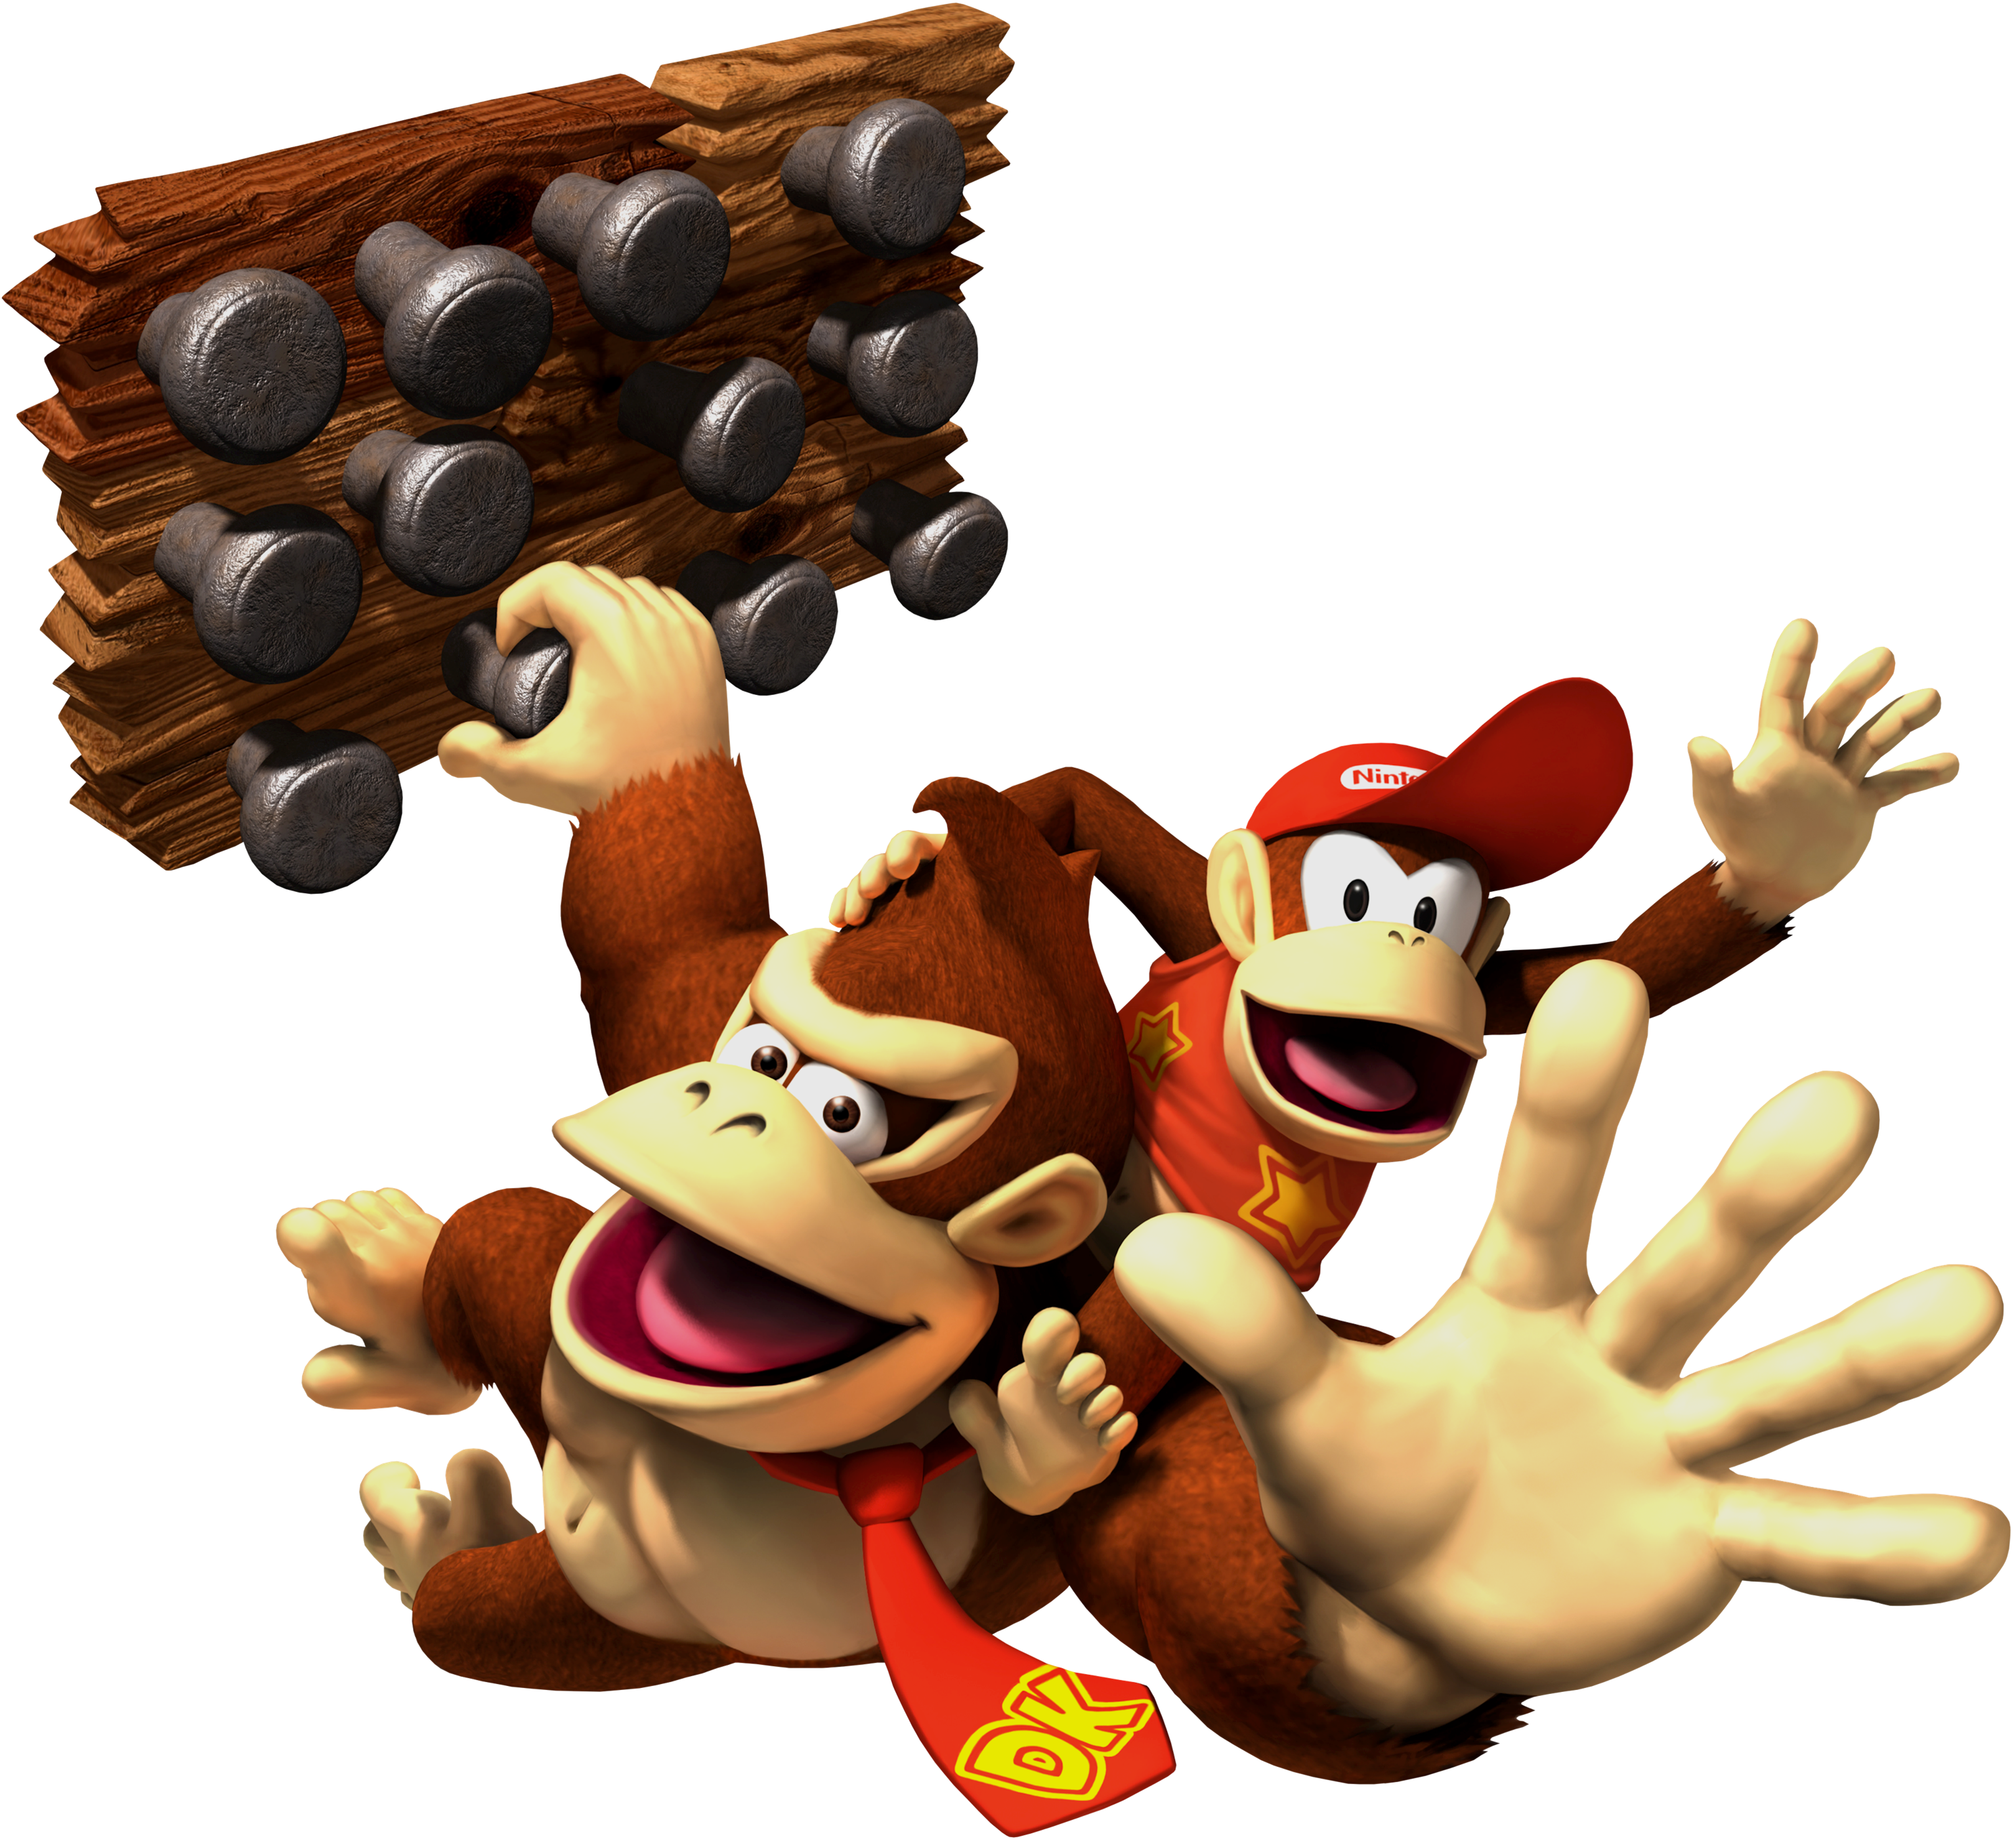 Donkey kong and diddy kong png. Dk vine s biography